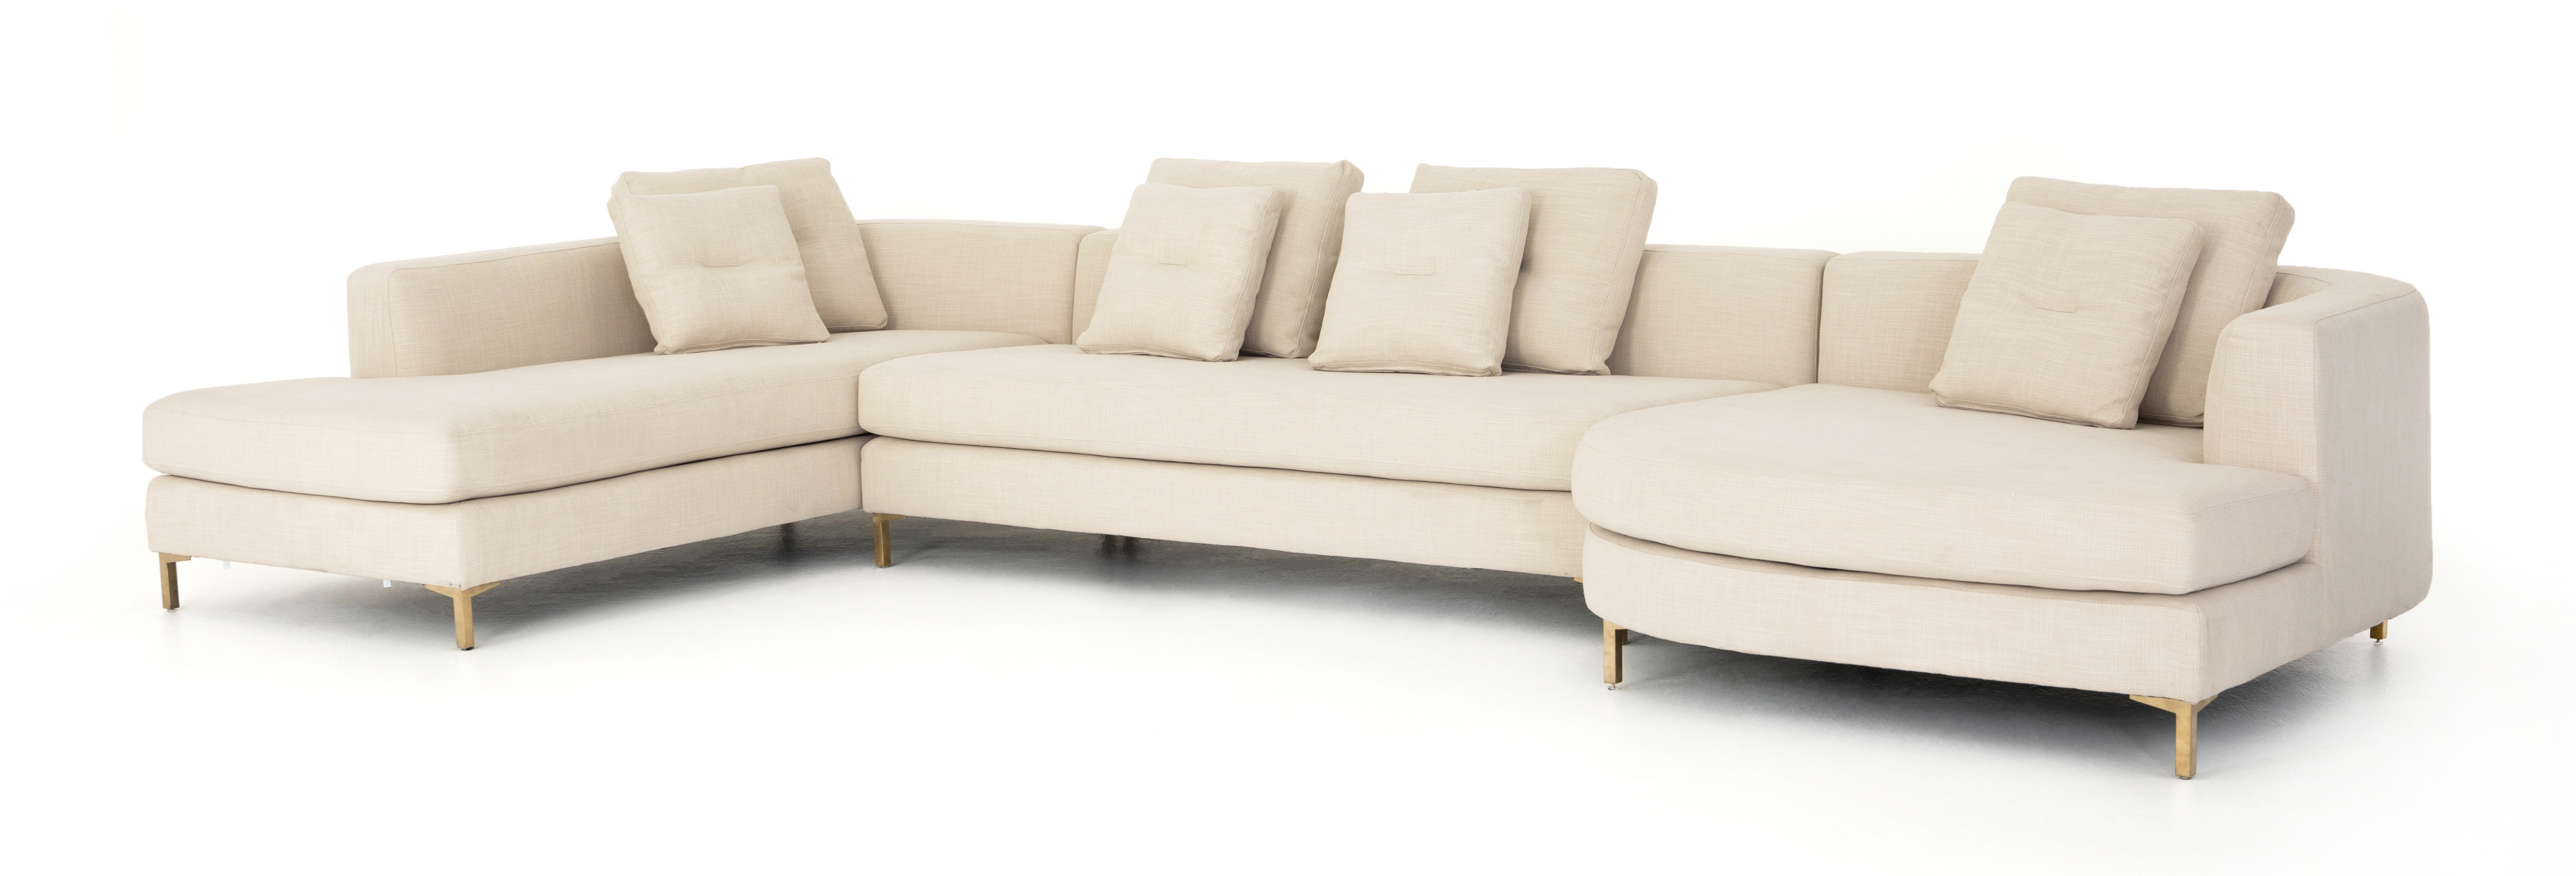 Greer 3 Piece Sectional